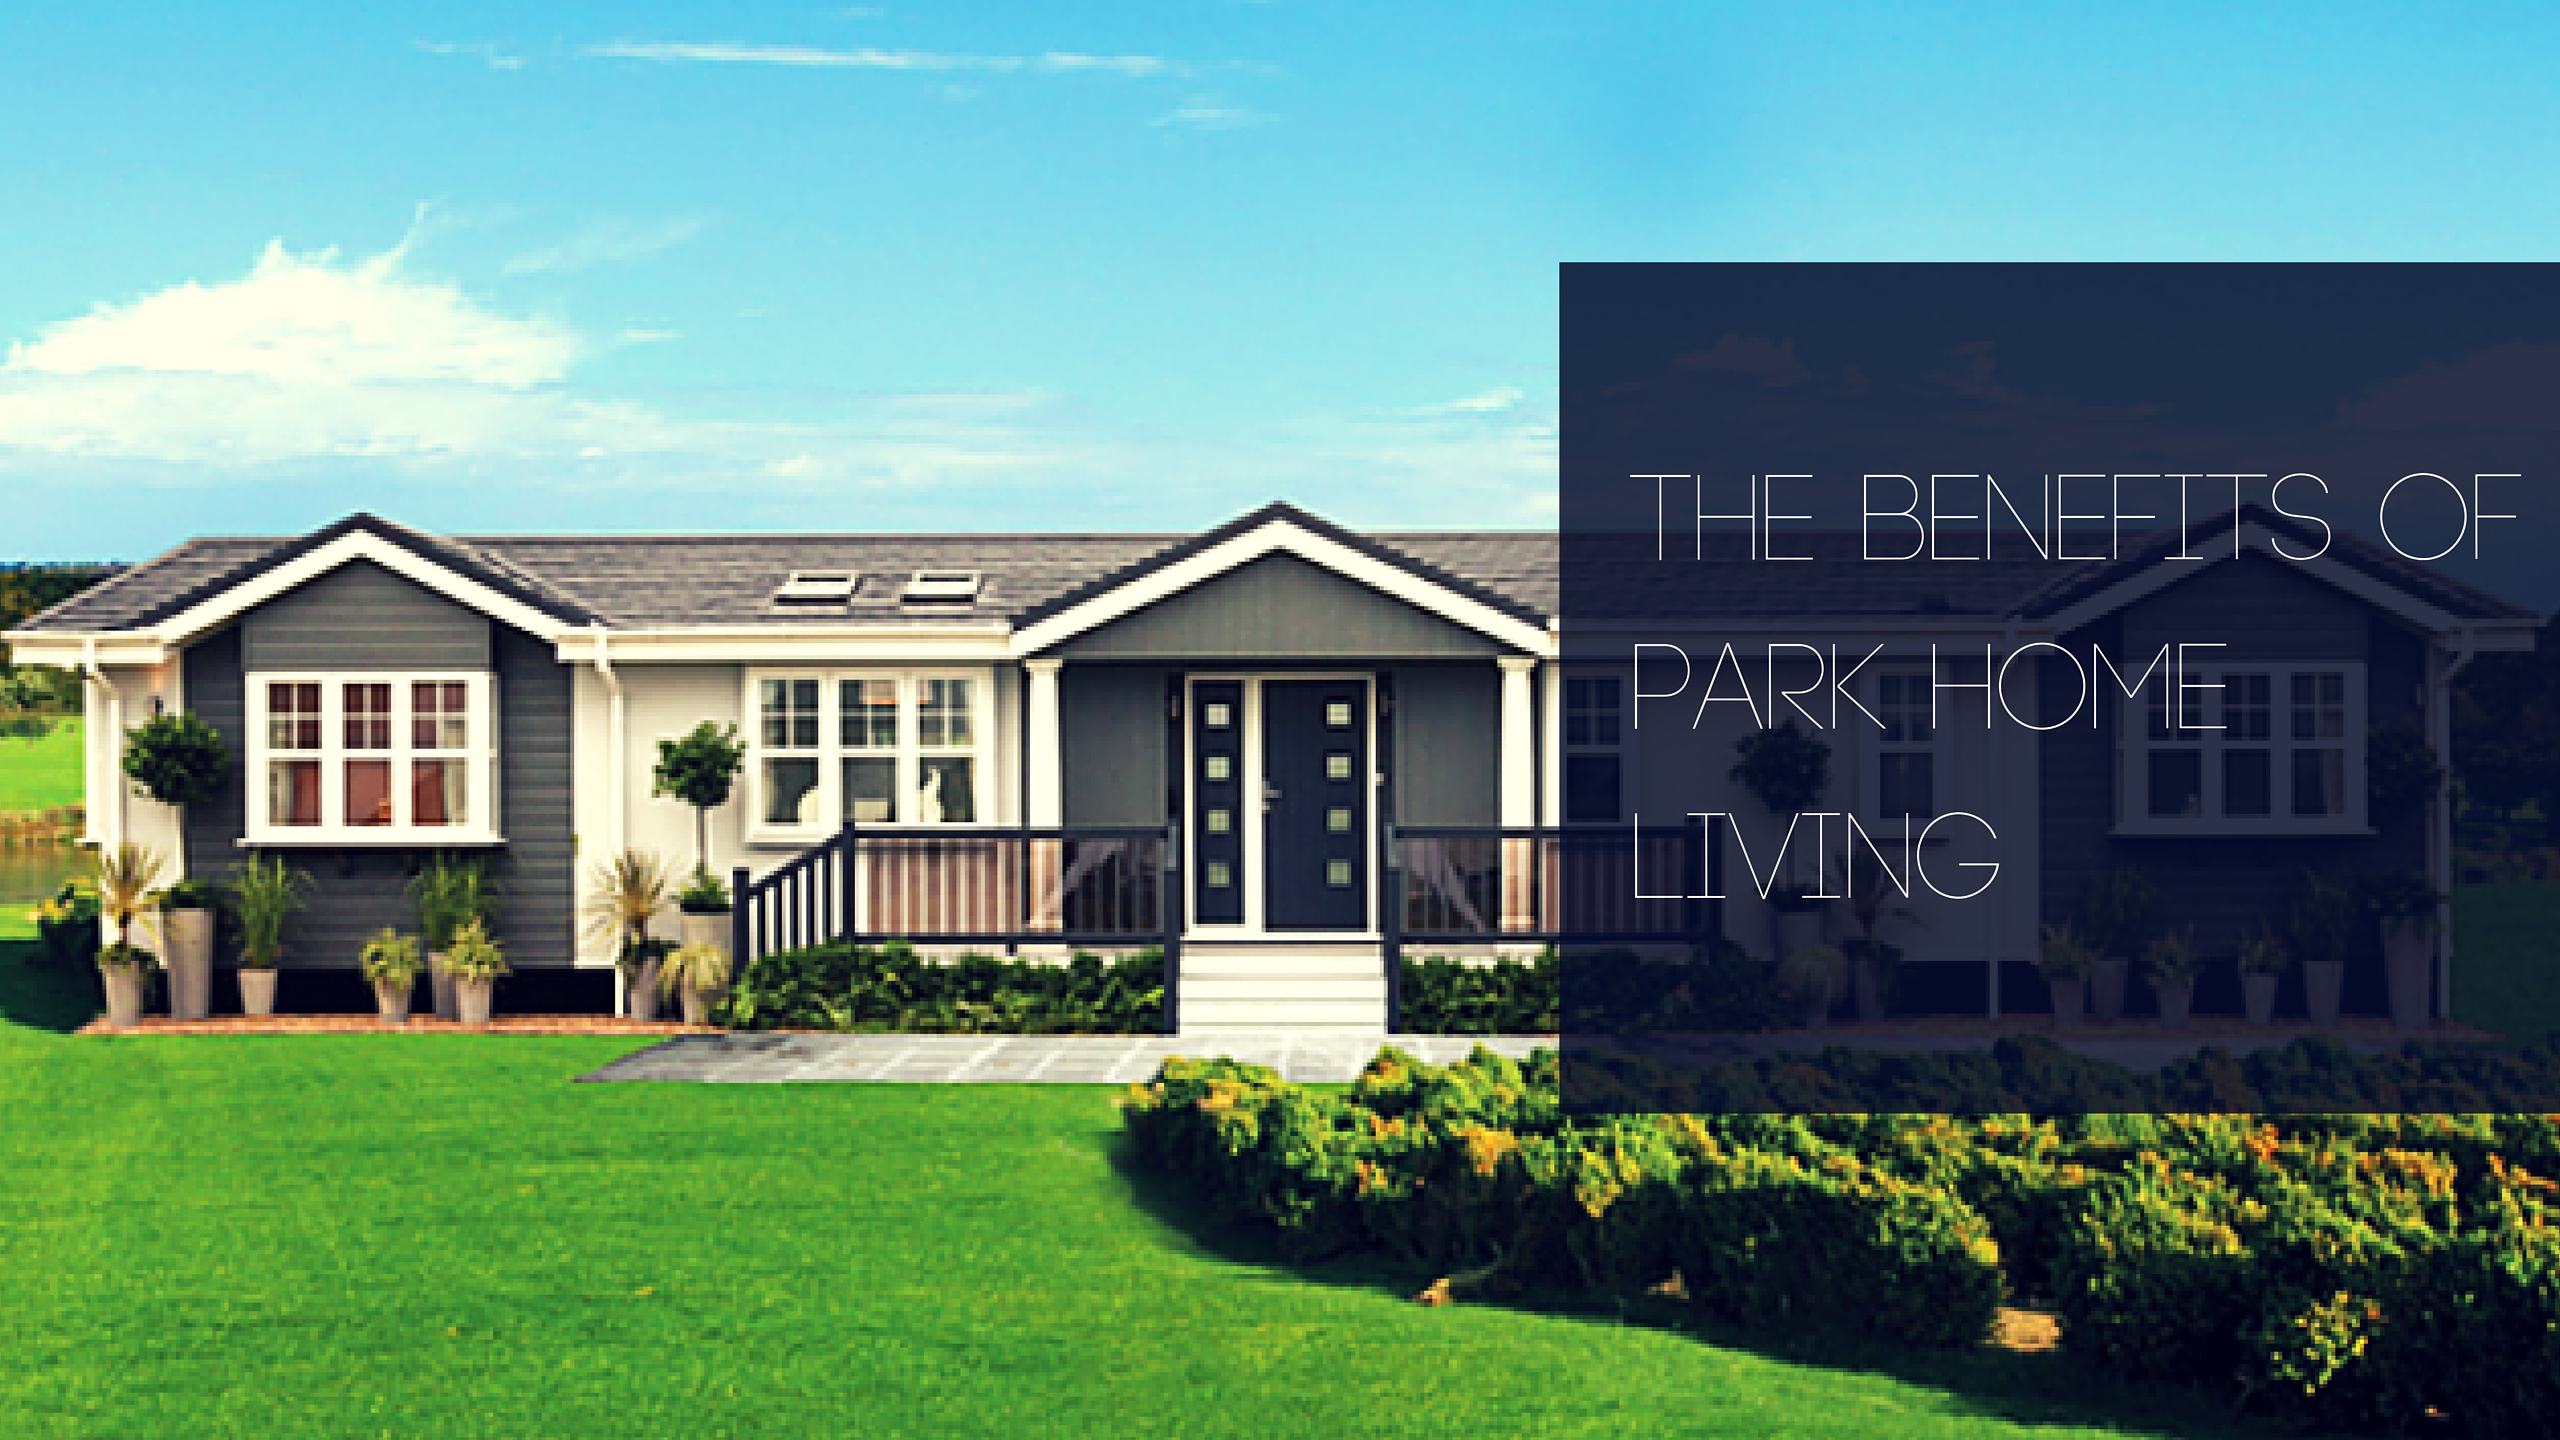 The benefits of park home living sell my group for Swapping houses instead of selling